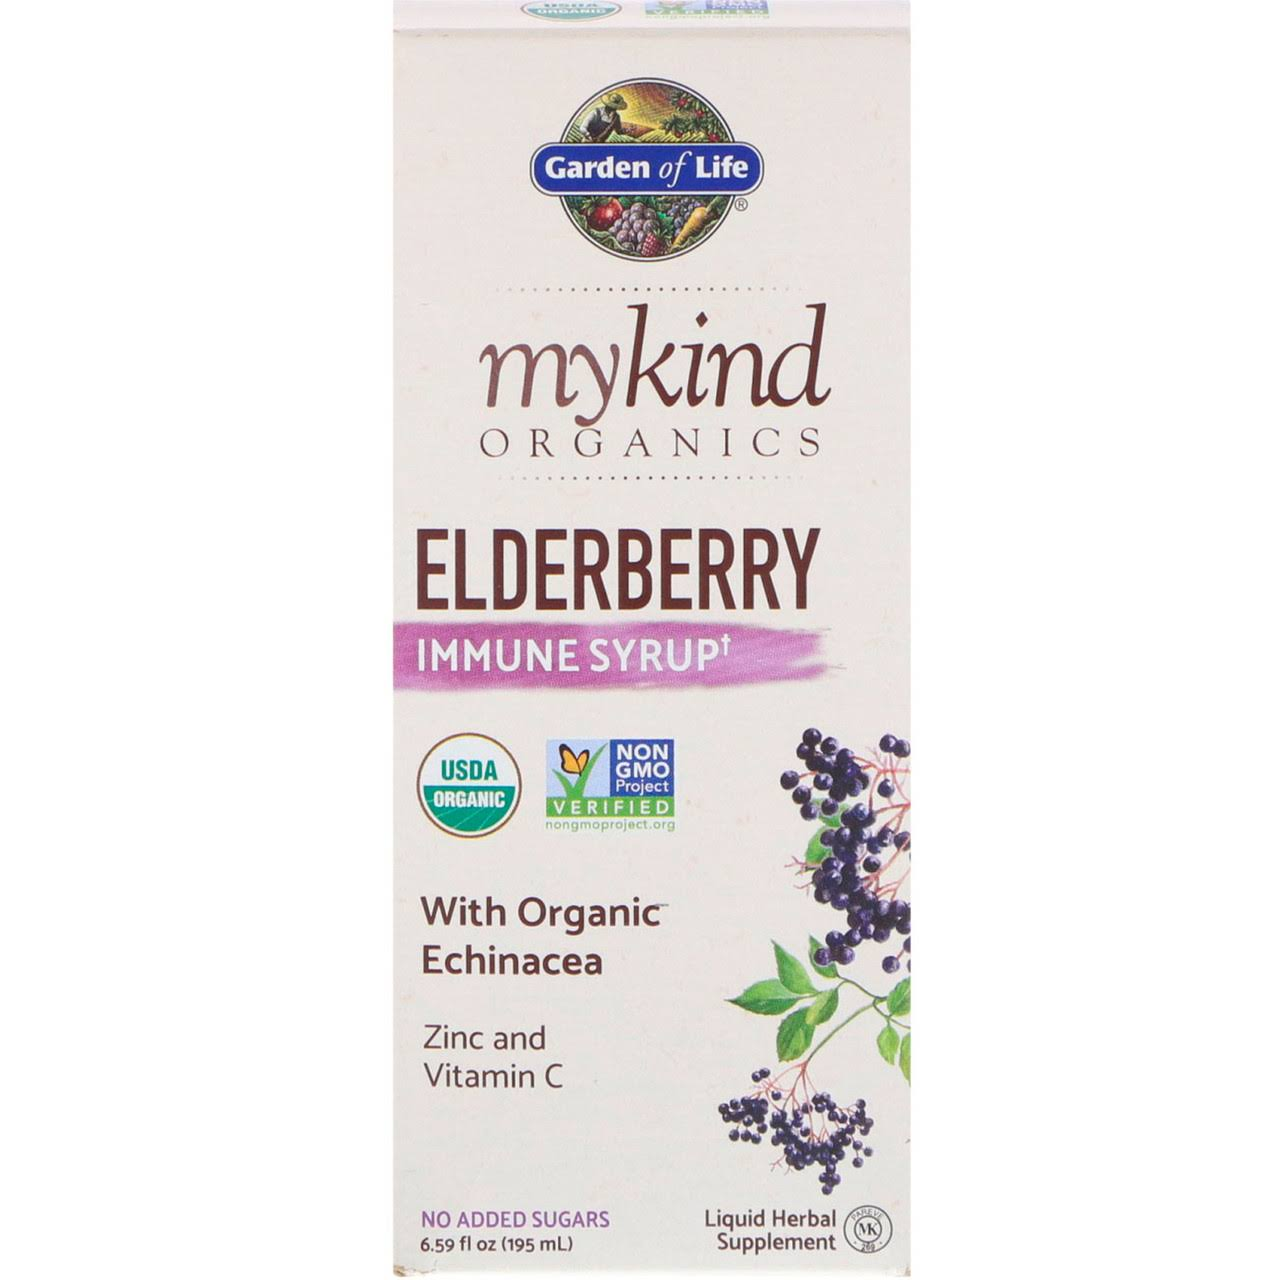 Garden of Life Elderberry, Immune Syrup - 6.59 fl oz